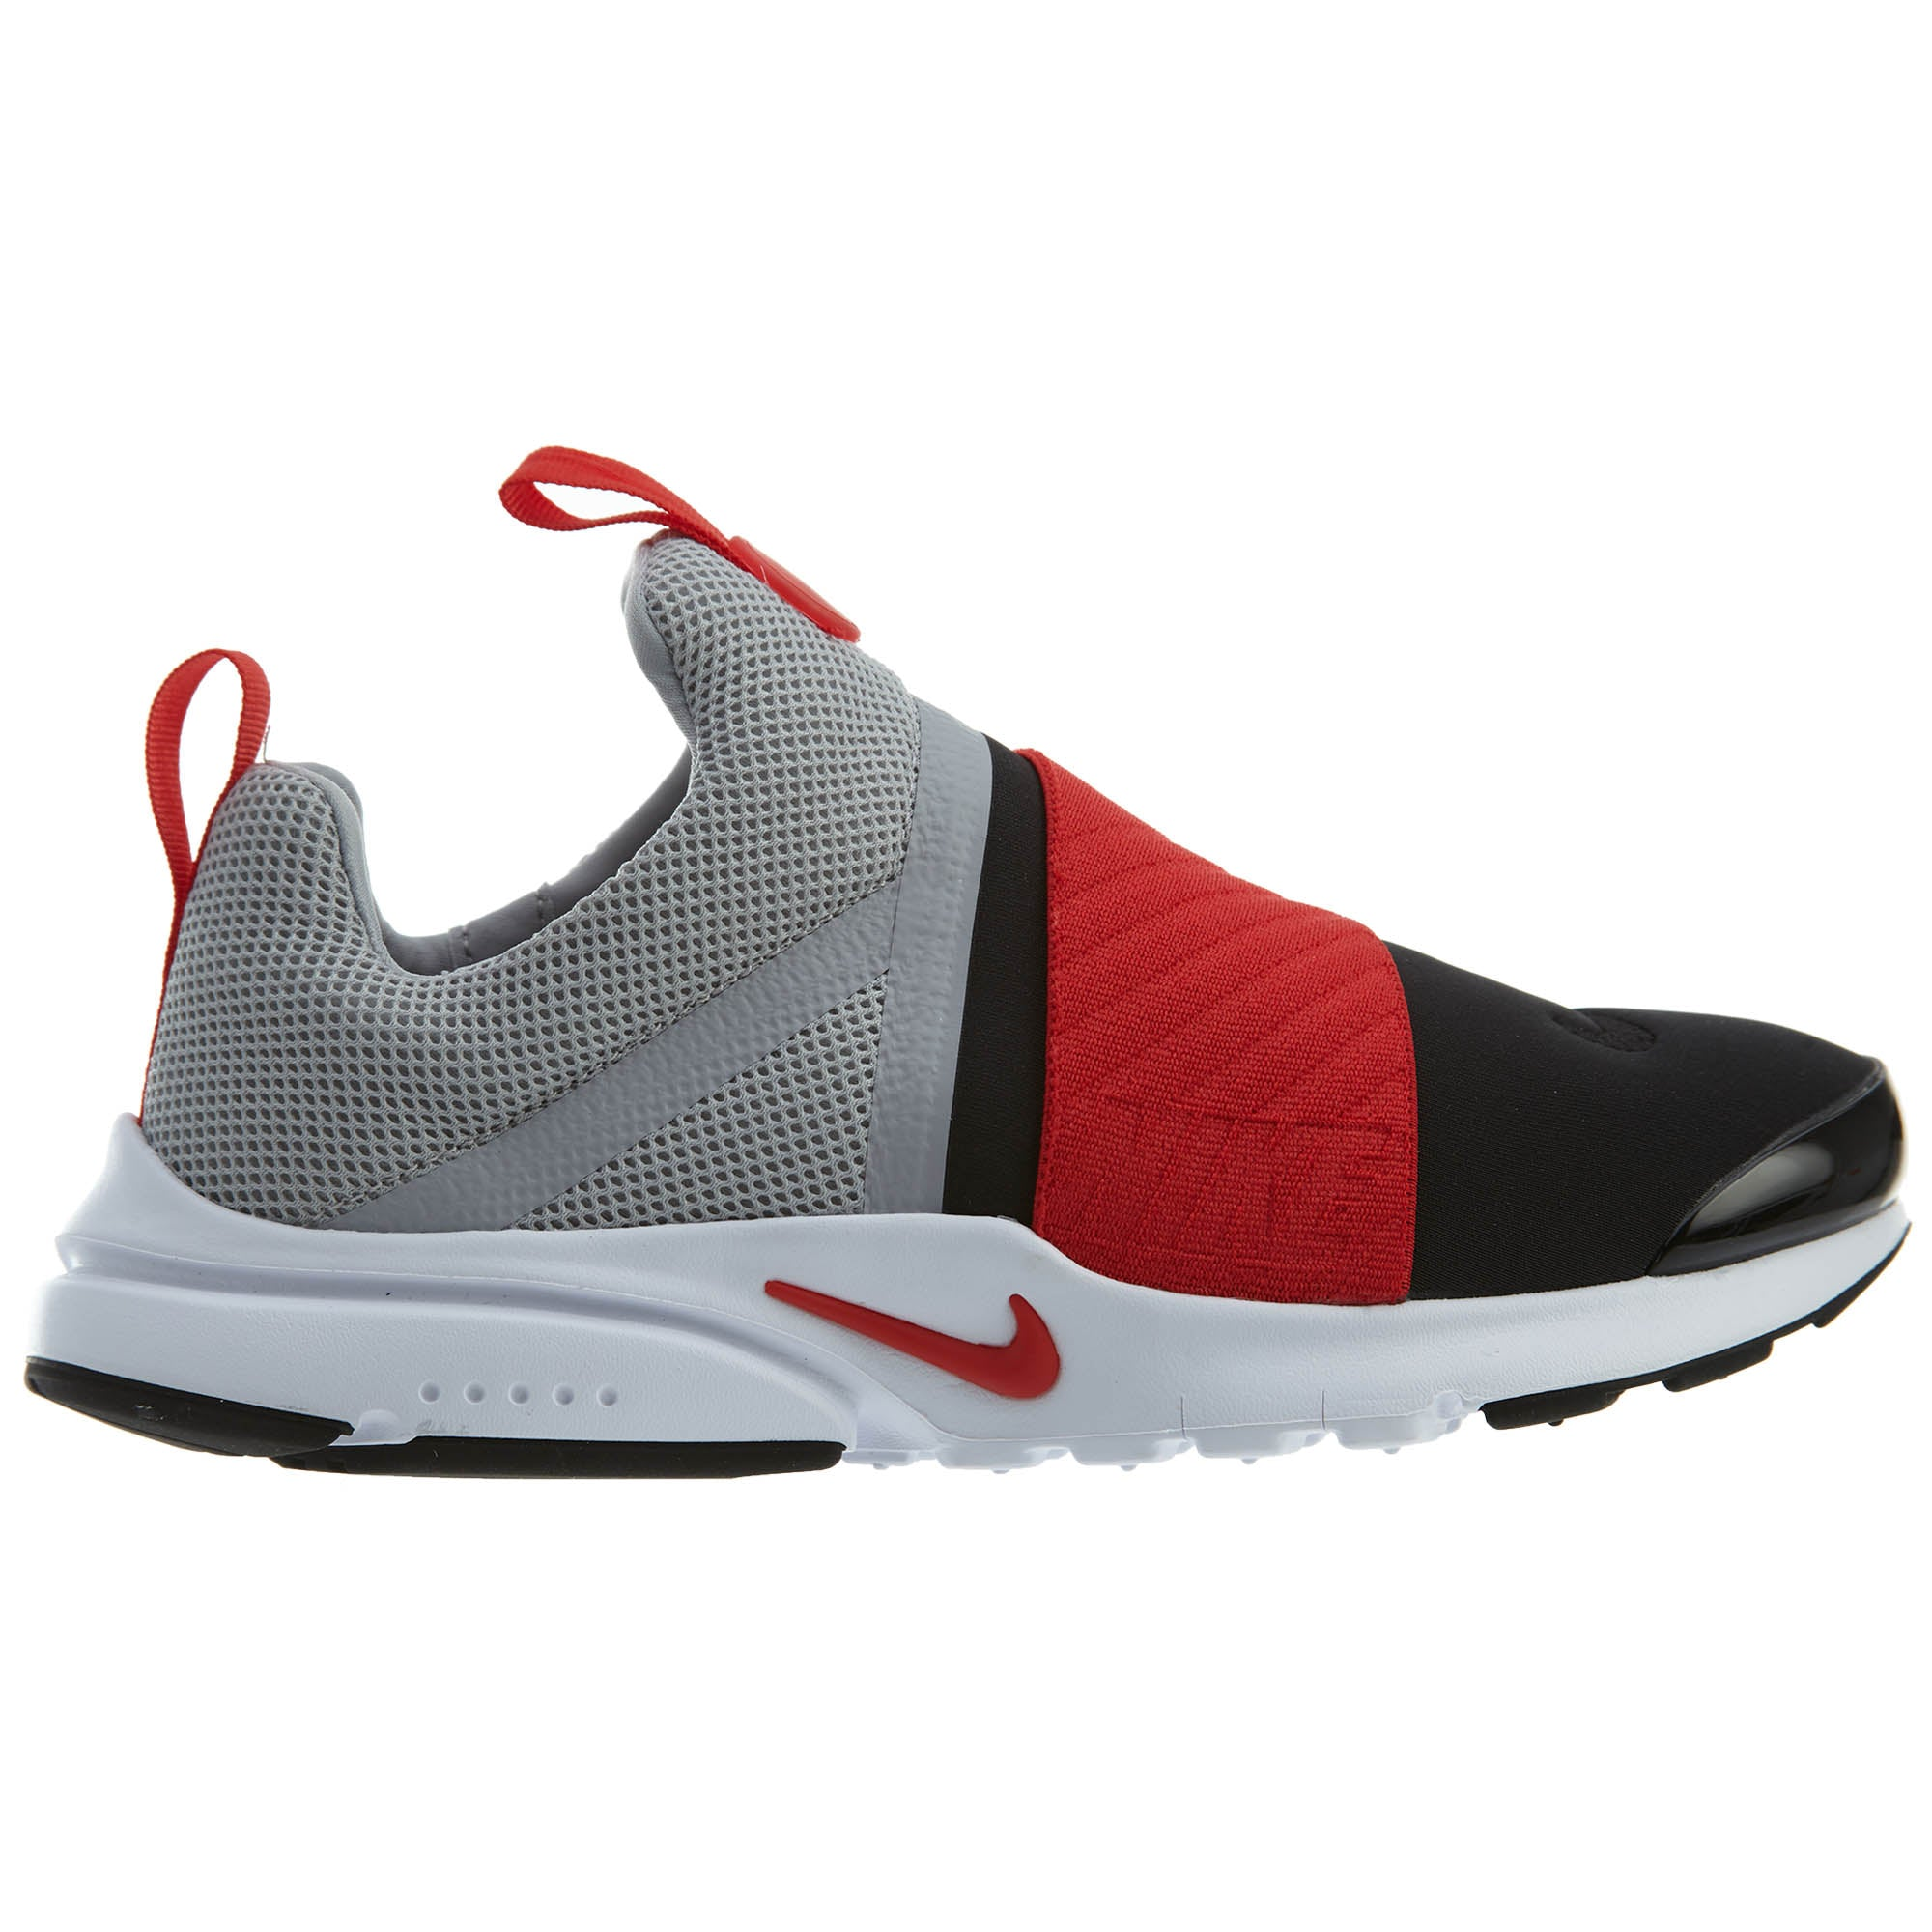 3ec00959df81 Nike Presto Extreme Big Kids Style   870020-009. NIKE   Athletic Shoes    Sneakers